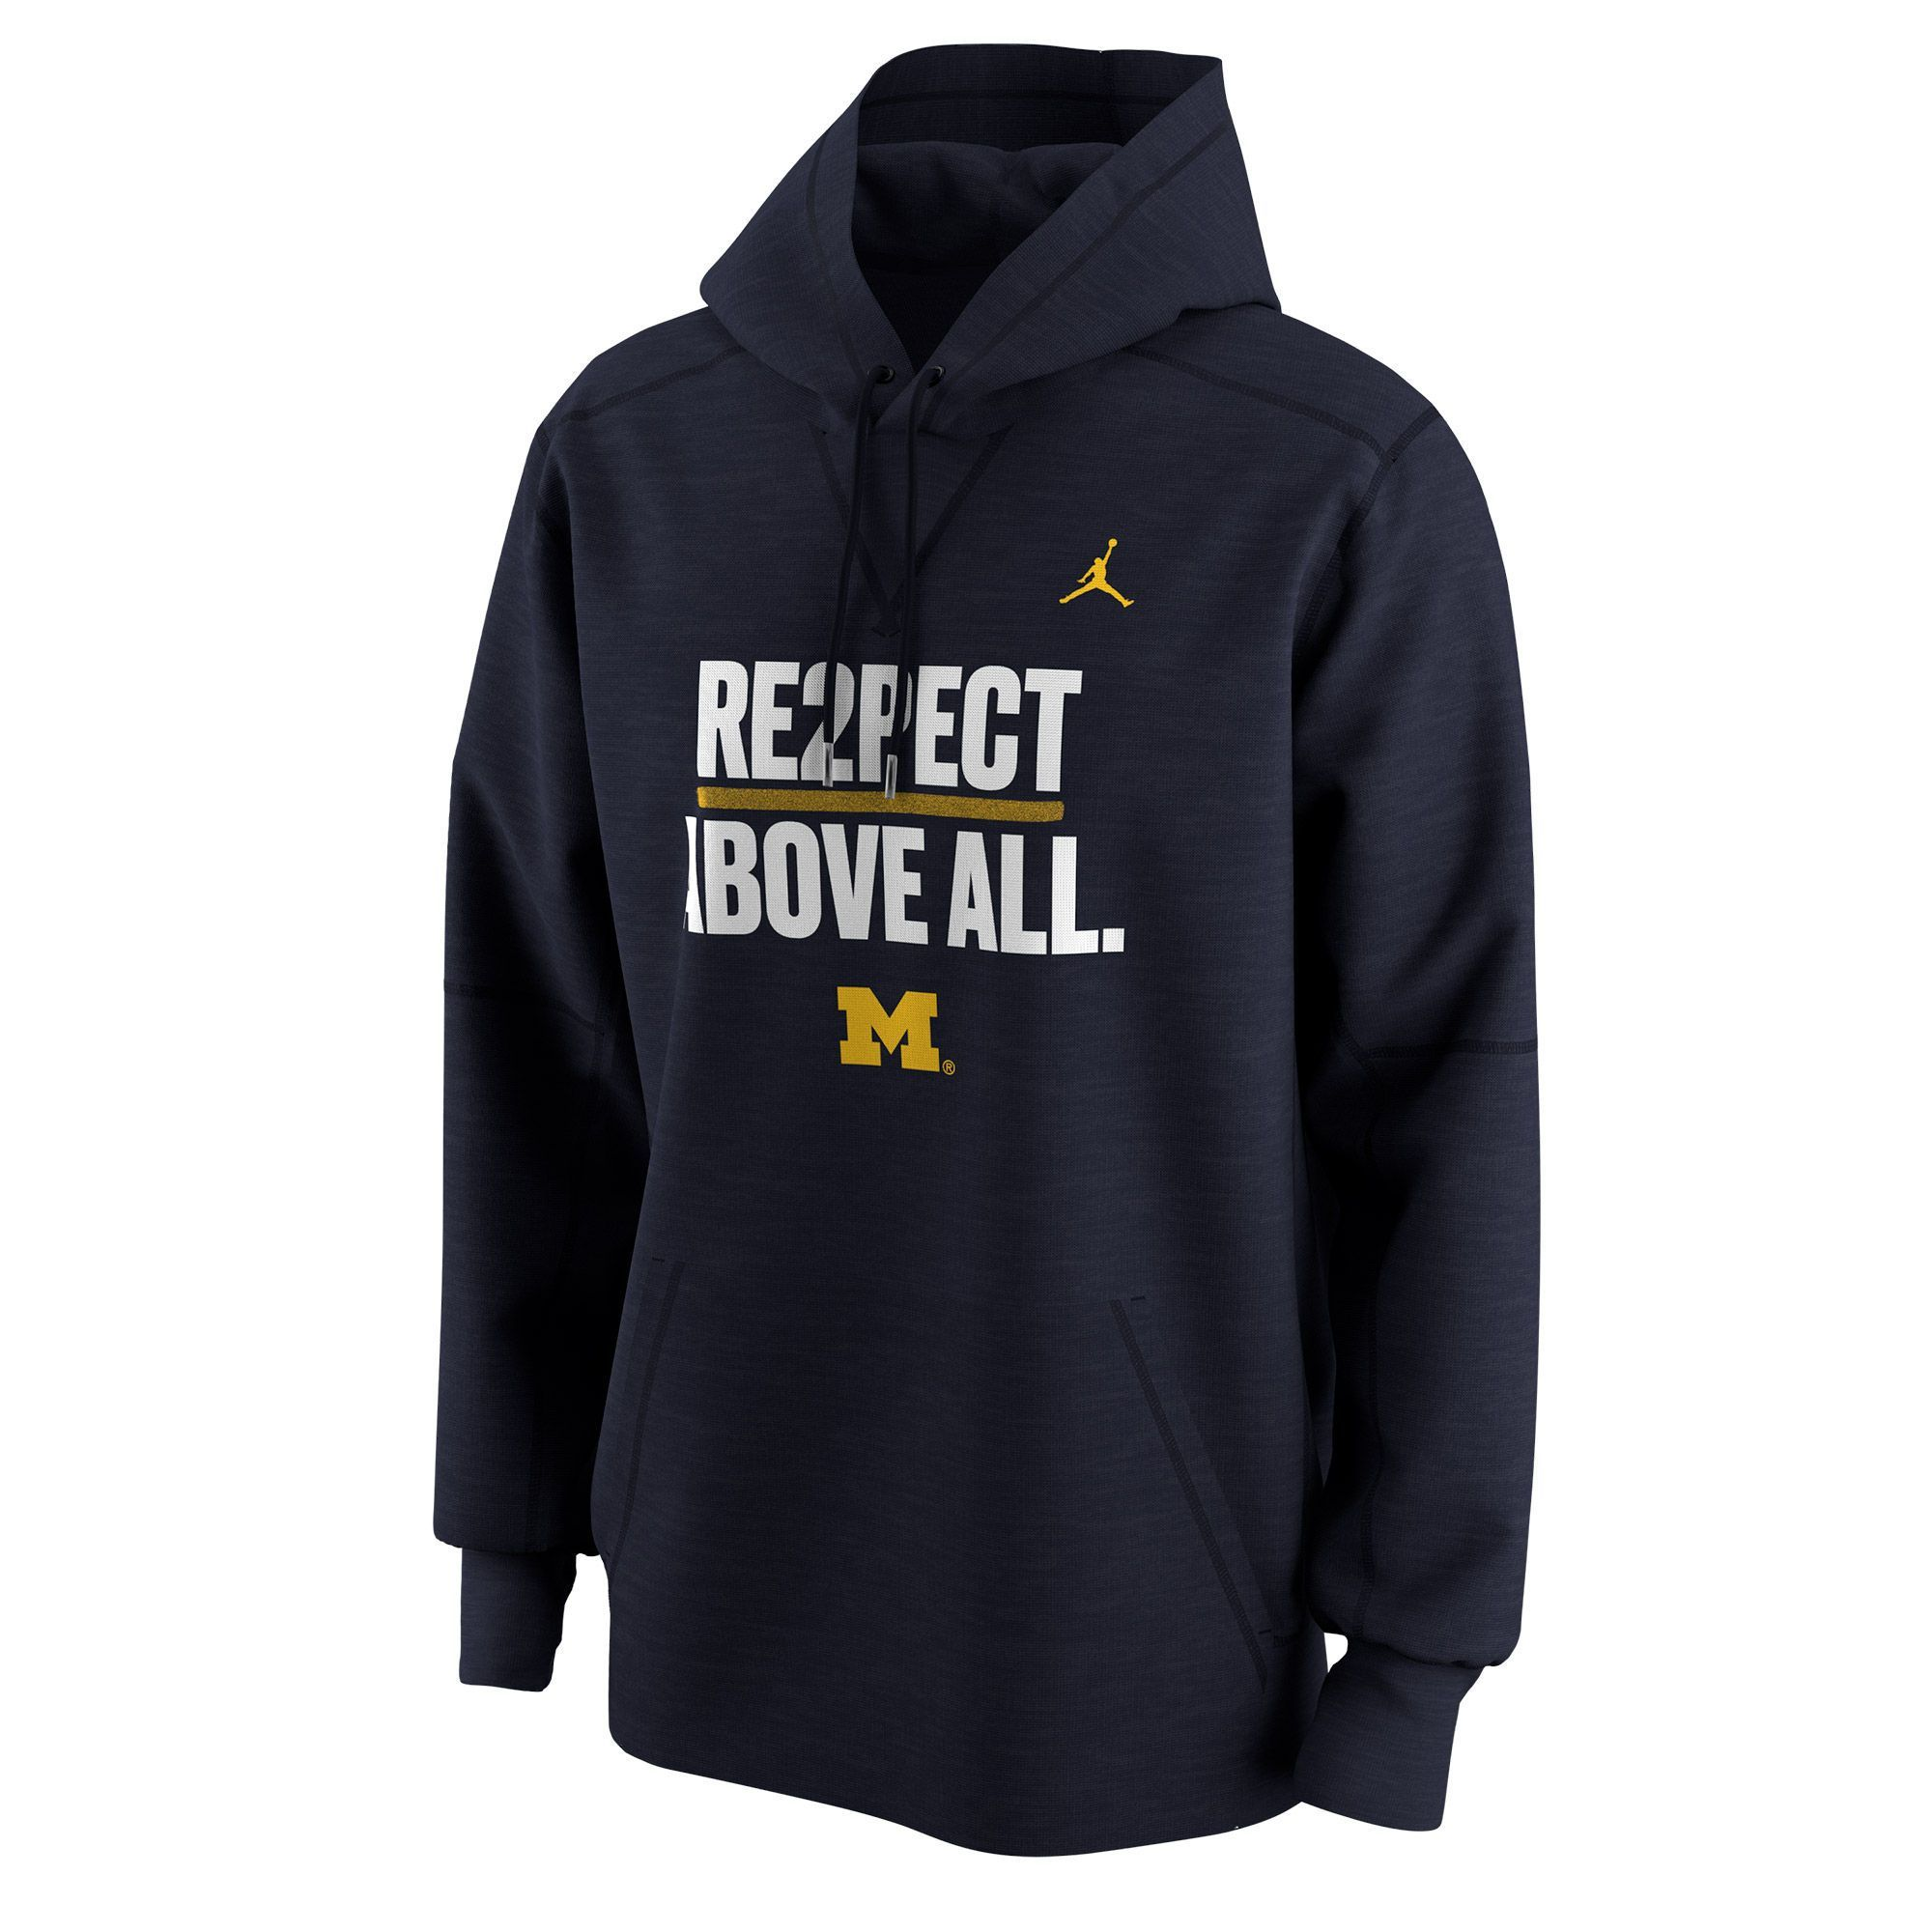 Michigan Jordan Gear >> Michigan Wolverines Re2spect Above All Jordan Men S